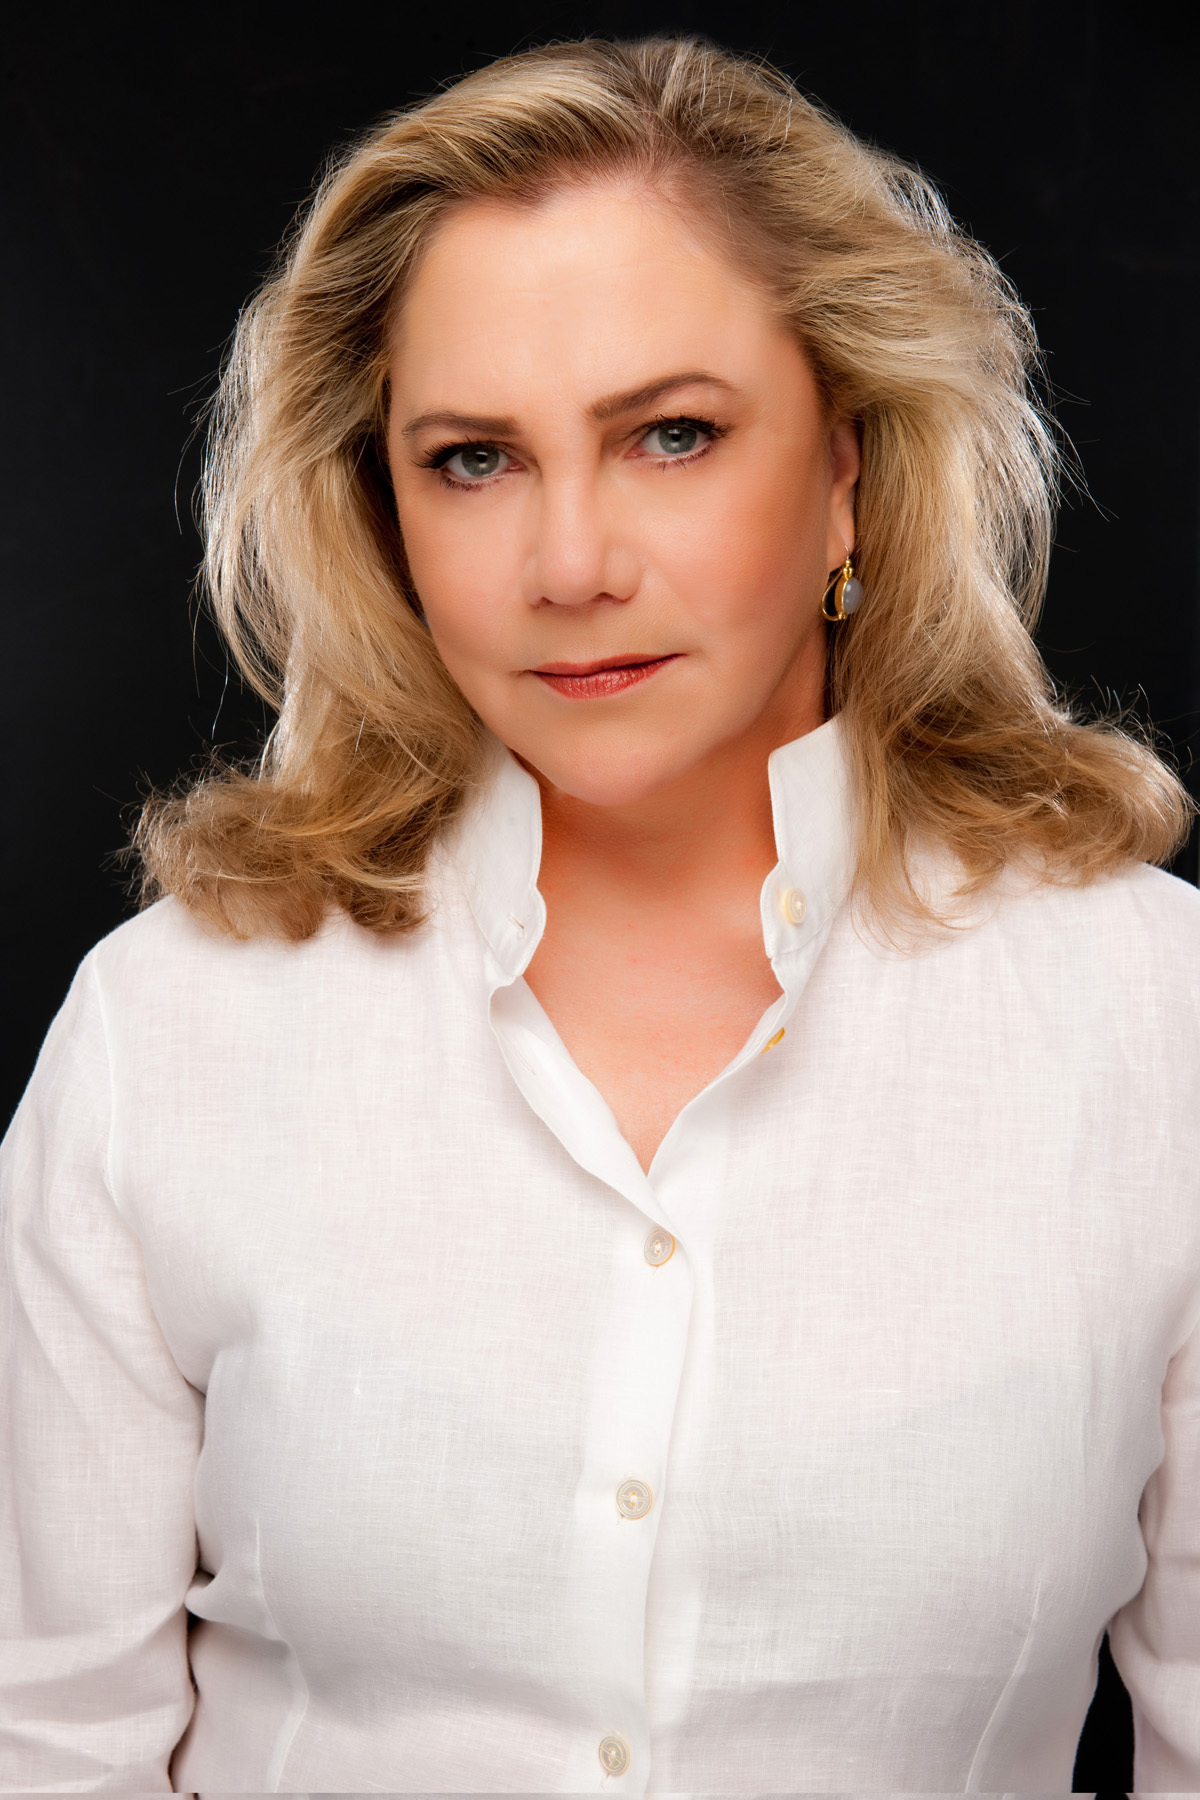 Kathleen Turner - Kathleen Turner Photo (22616598) - Fanpop